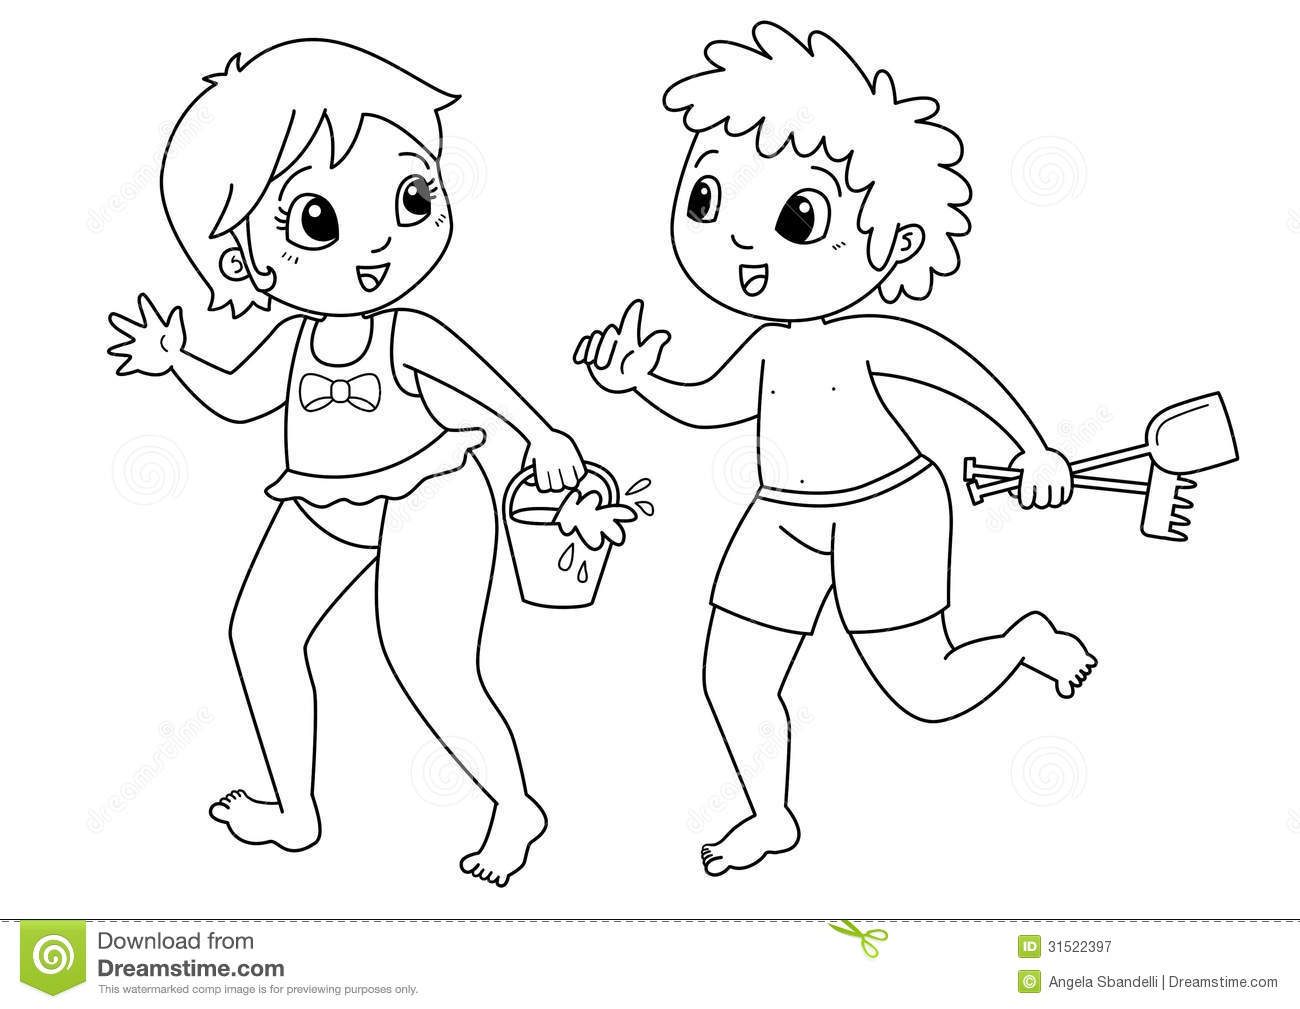 Children Drawing To Color Royalty Free Stock Photography